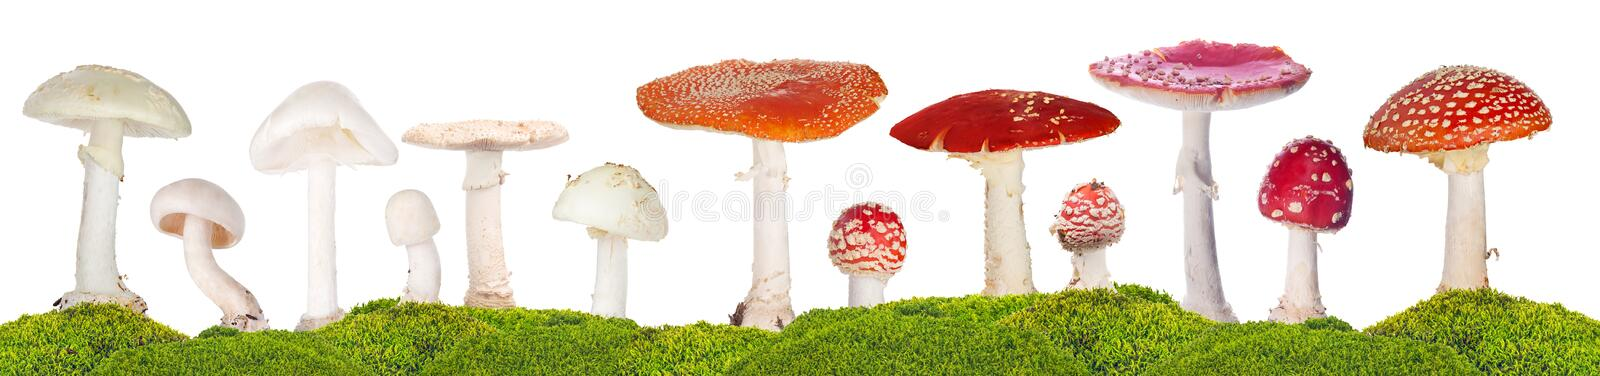 Isolated thirteen poisonous mushroom in green moss stock images